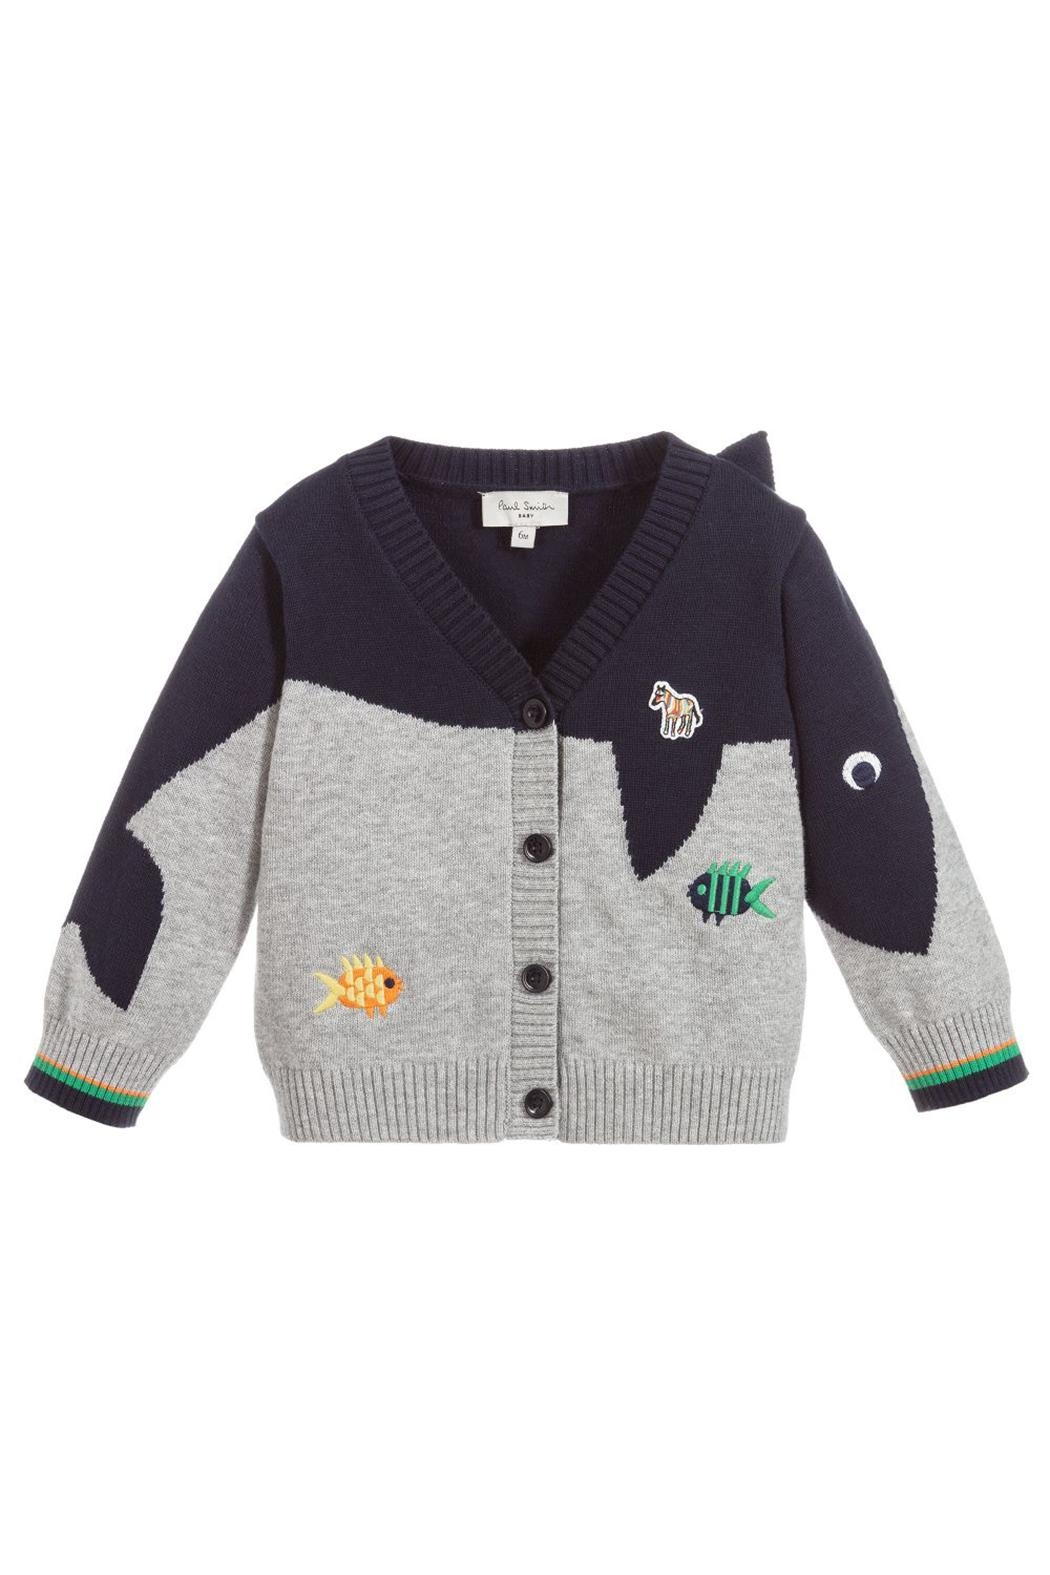 Paul Smith Junior Cotton-Knit 'Tiffen' Cardigan - Main Image